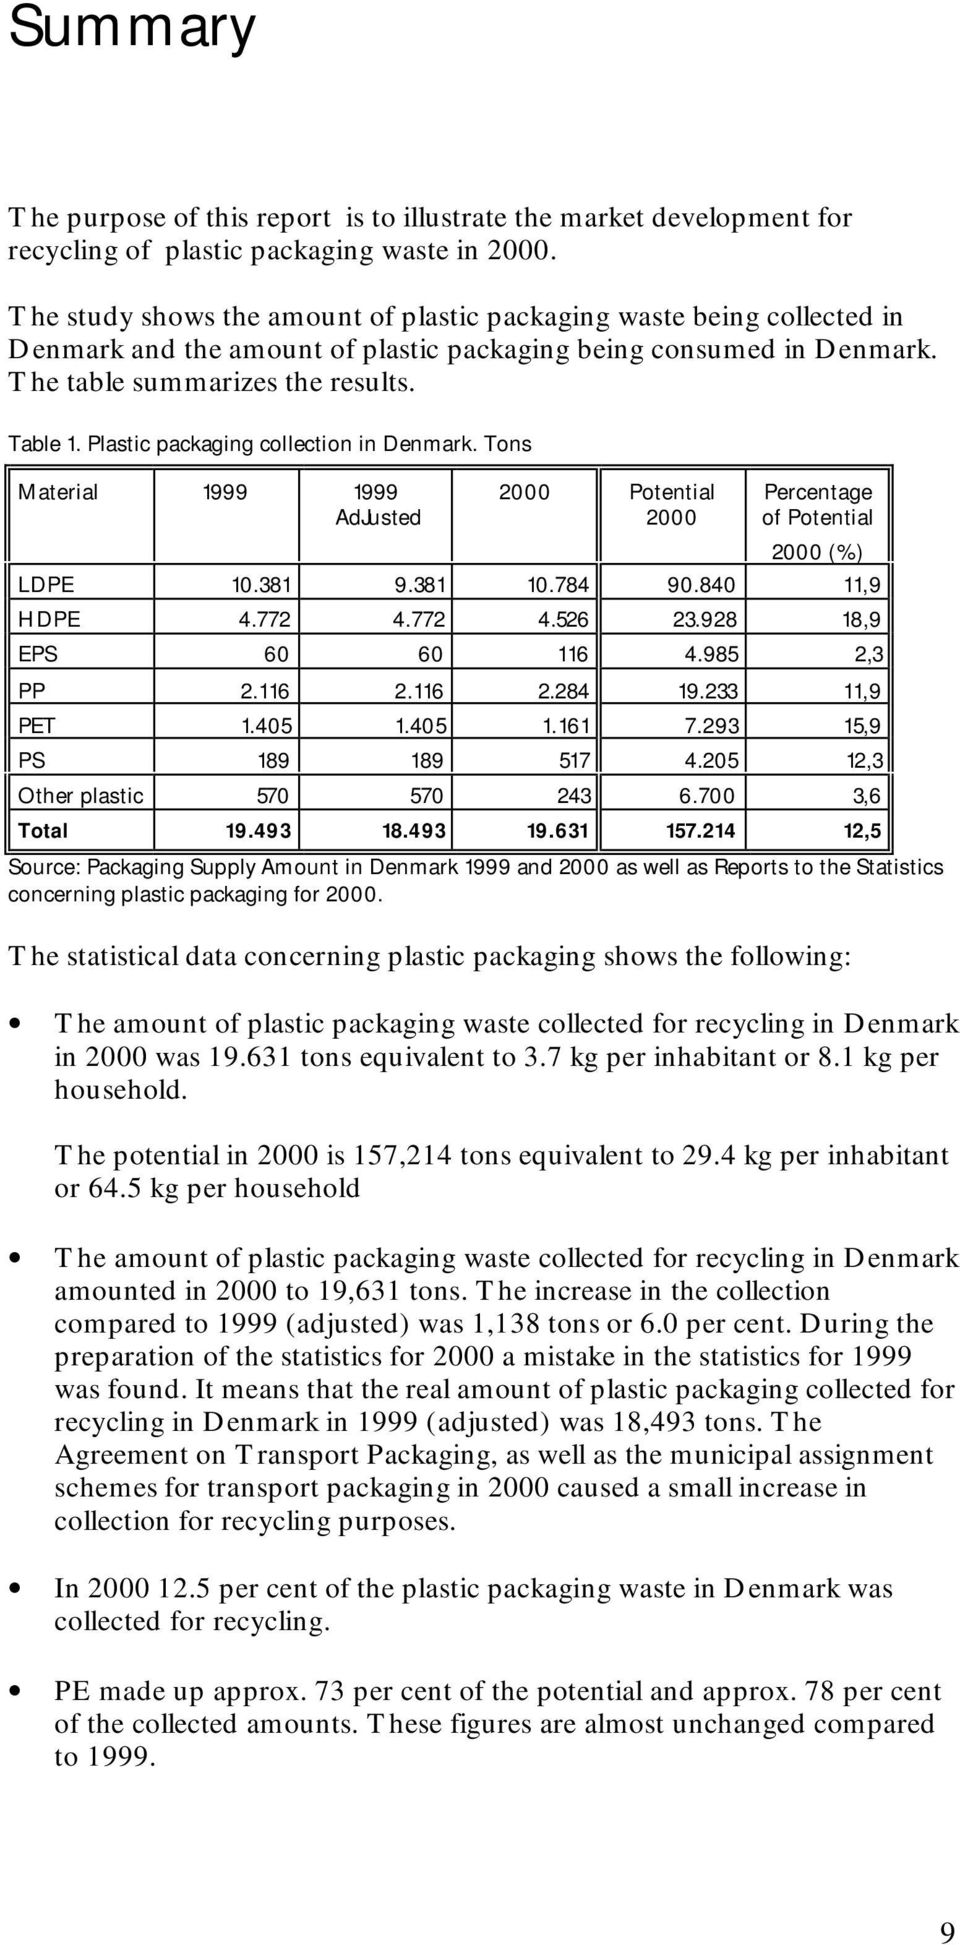 Plastic packaging collection in Denmark. Tons Material 1999 1999 AdJusted 2000 Potential 2000 Percentage of Potential 2000 (%) LDPE 10.381 9.381 10.784 90.840 11,9 HDPE 4.772 4.772 4.526 23.